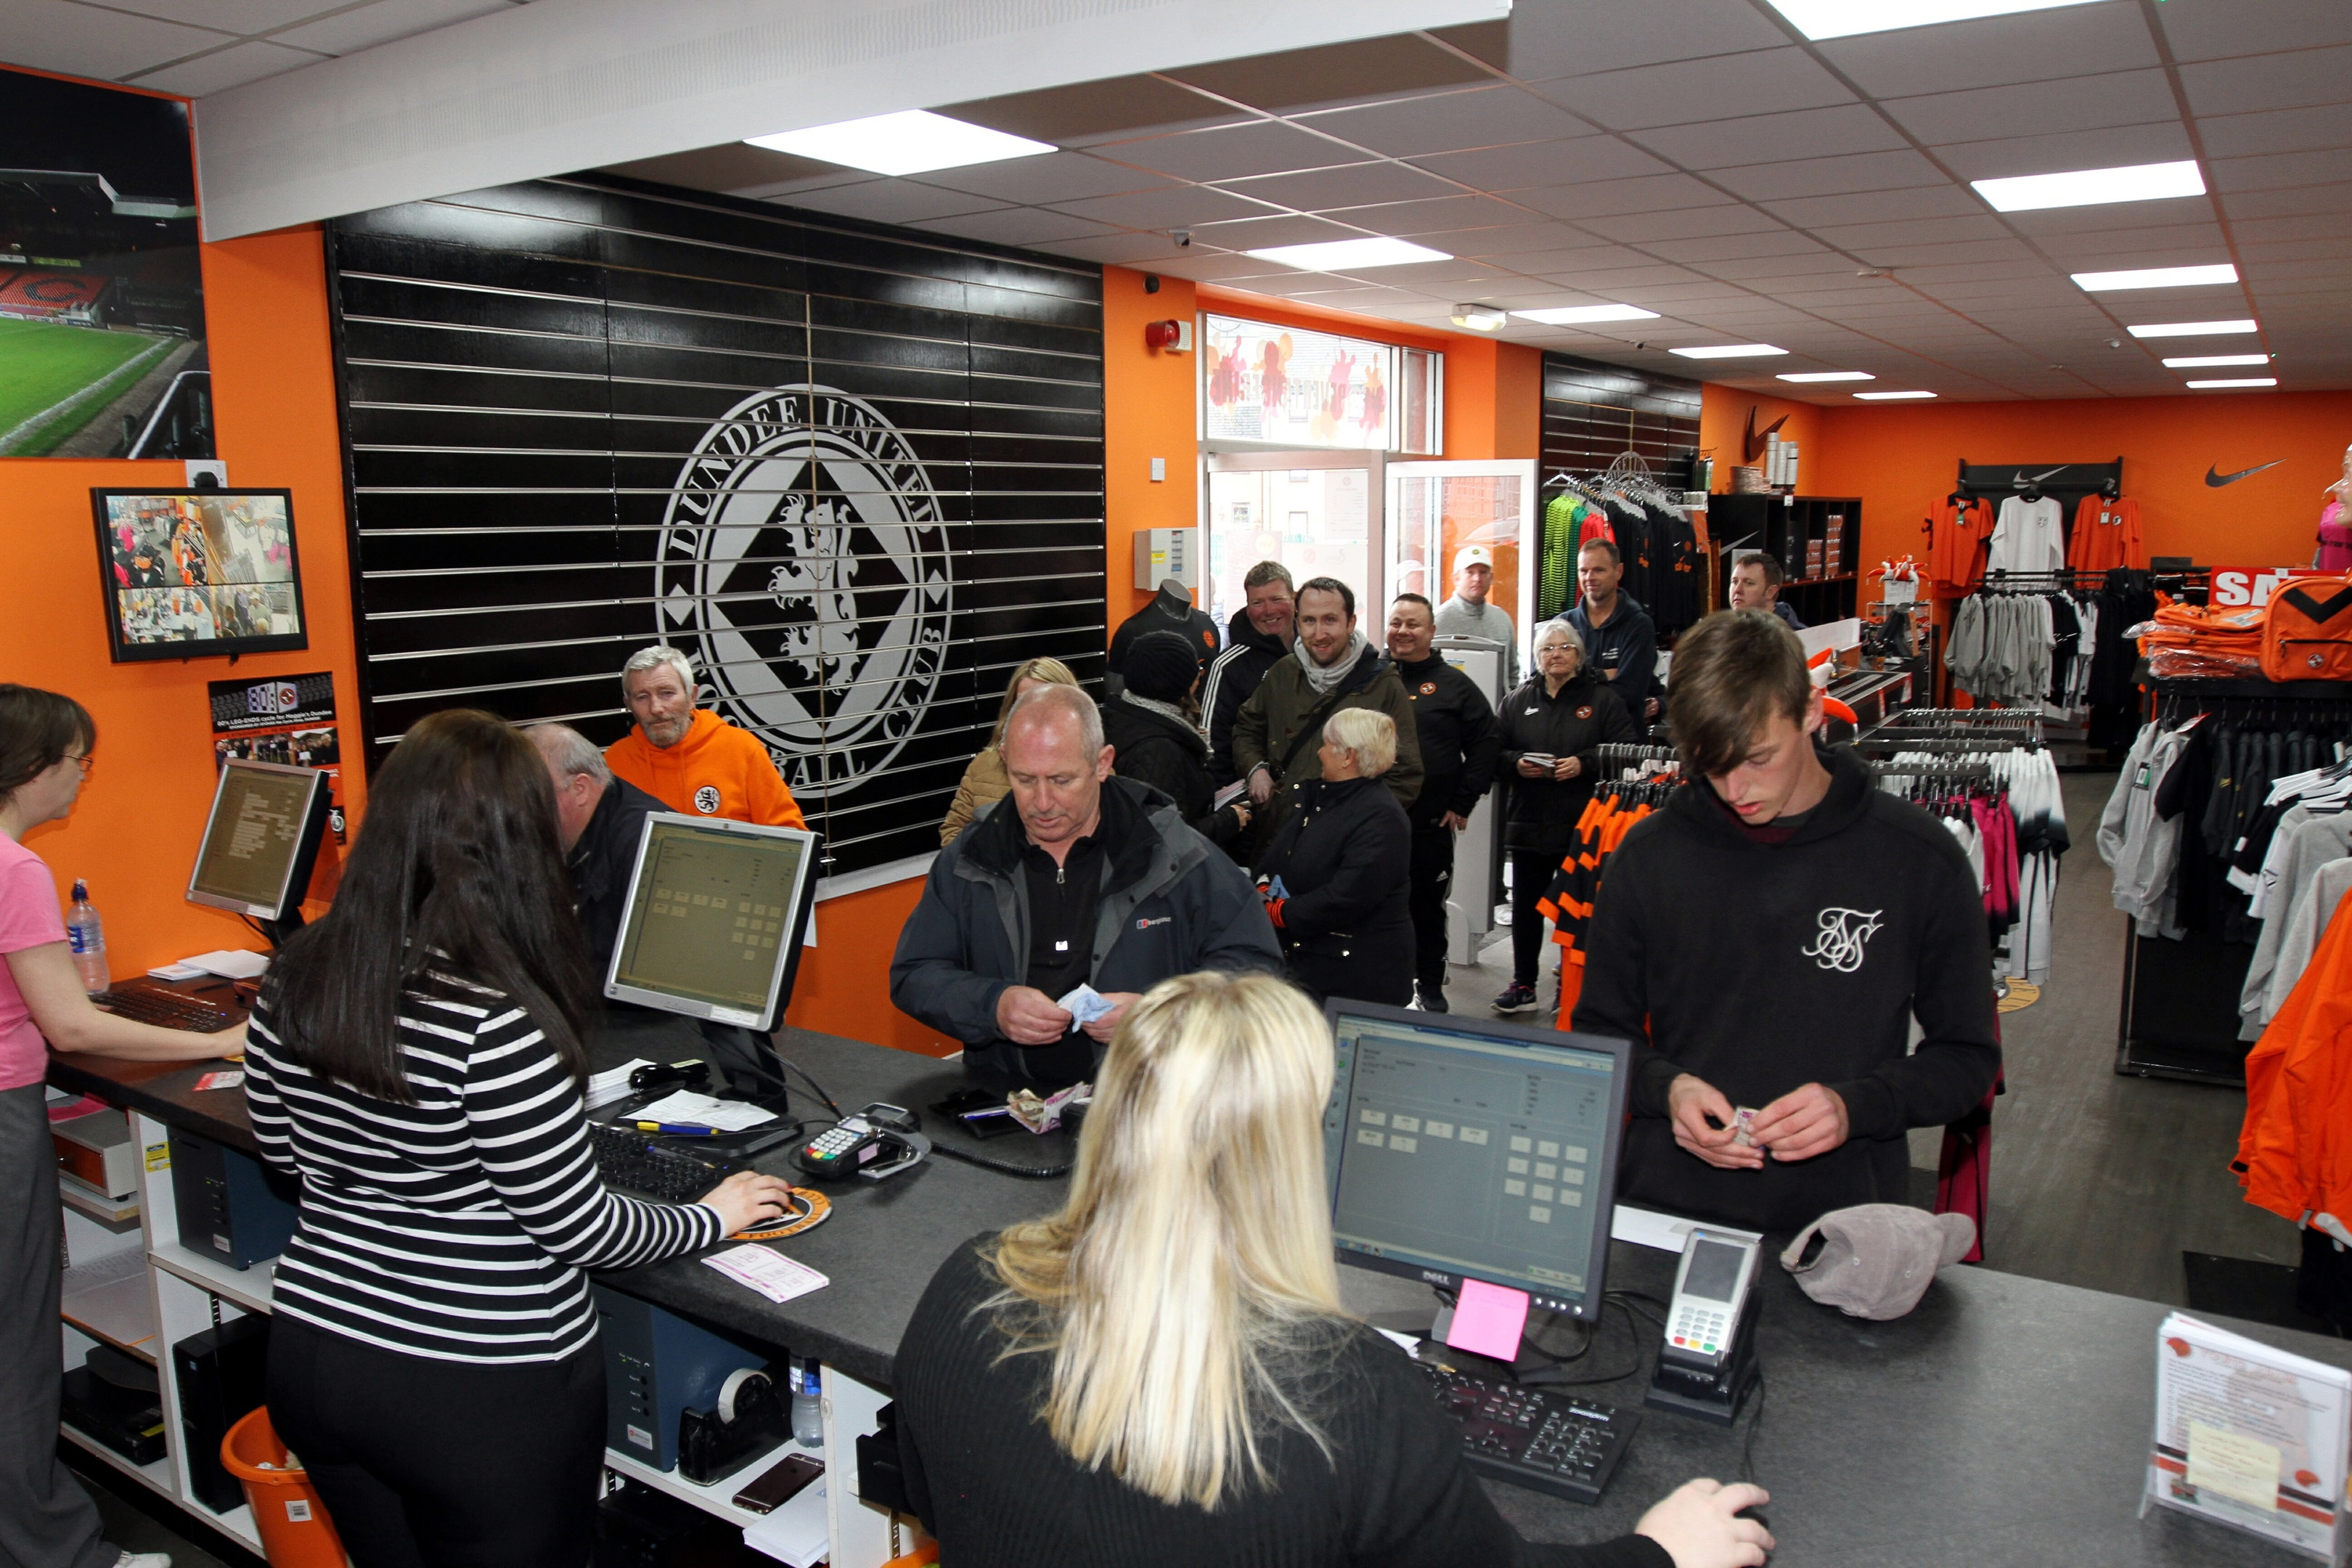 Fans waiting to get tickets from the Dundee United club shop on Wednesday.